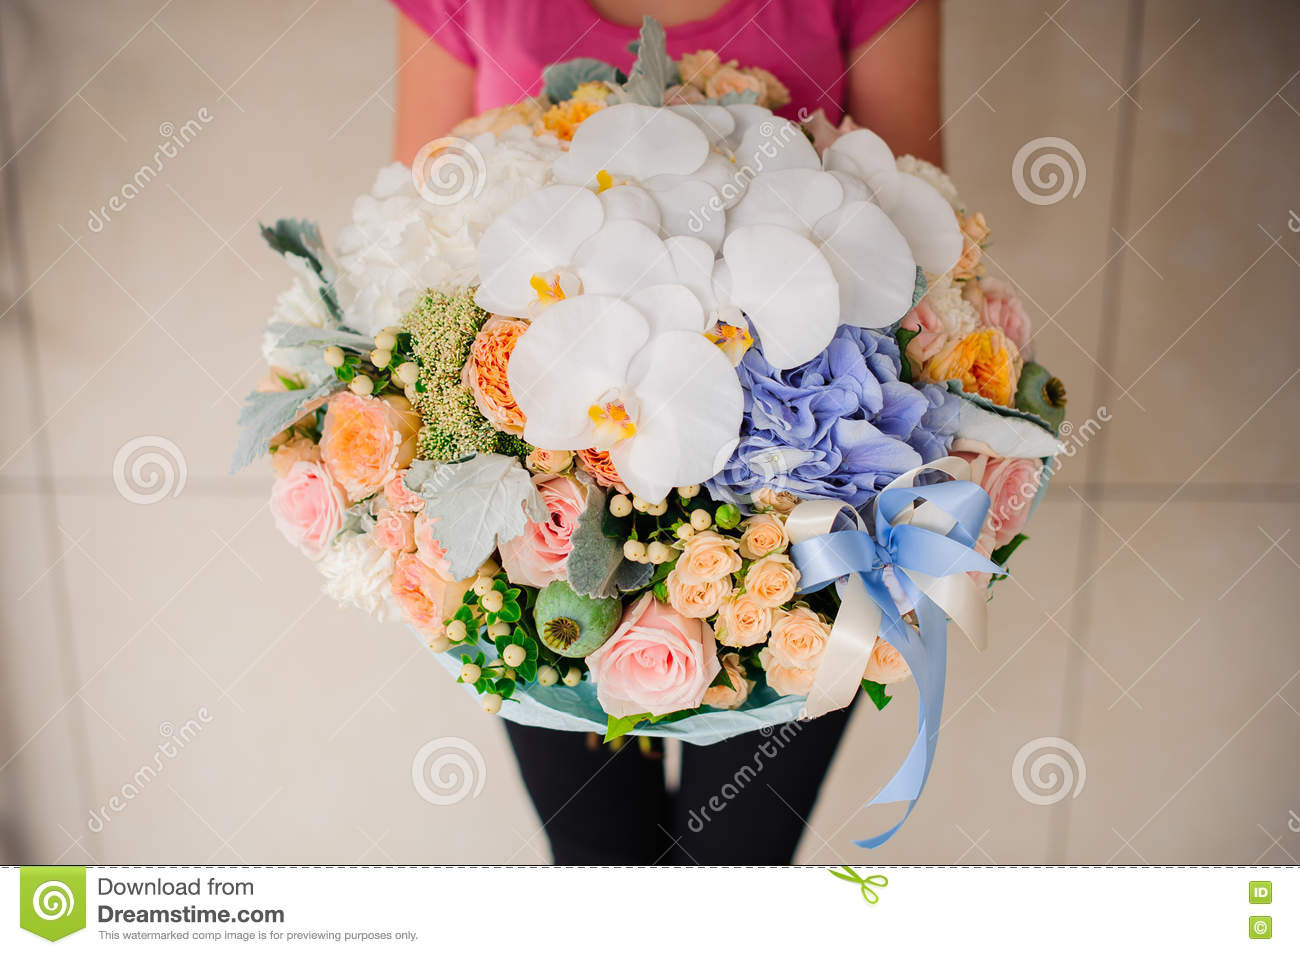 Girl holding beautiful mix flower bouquet with white orchid